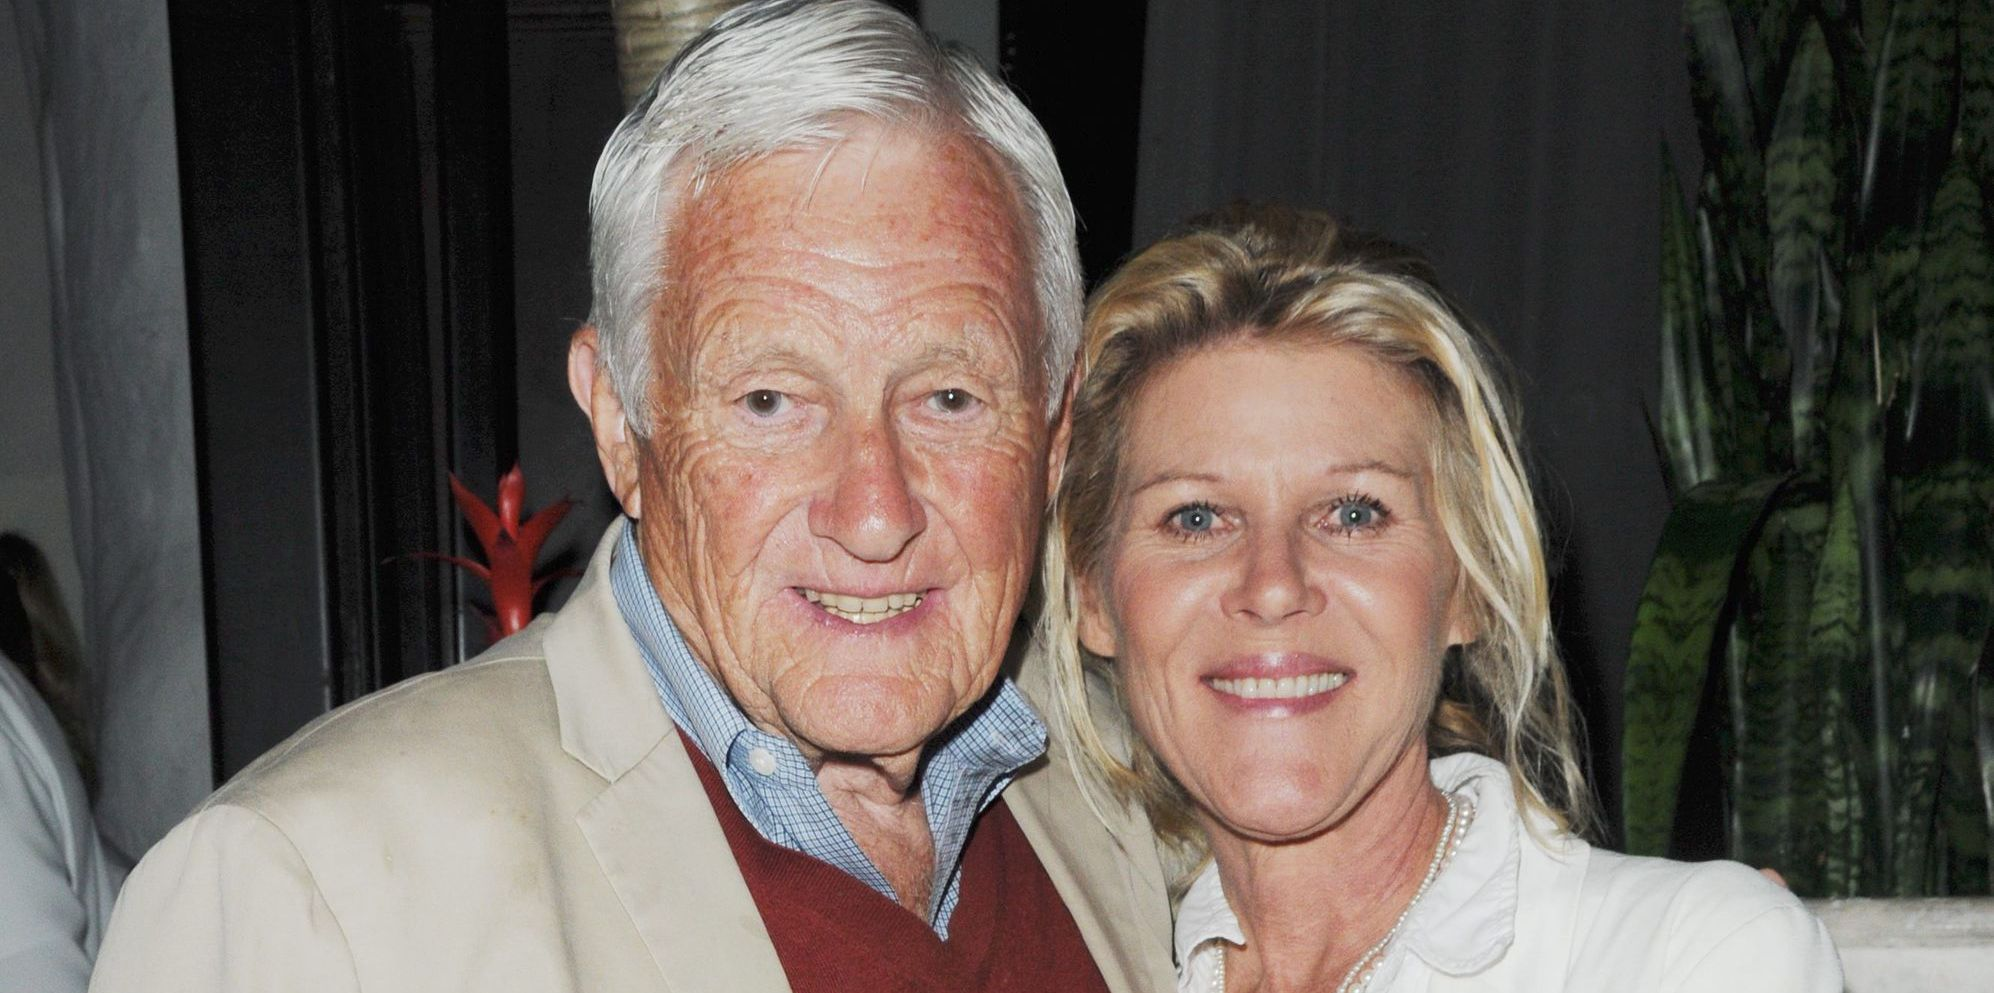 Alley Mills, Orson Bean The Bold and the Beautiful Celebrates their 27th Anniversary Red O Restaurant Los Angeles, CA 4/12/14  © Jill Johnson/jpistudios.com 310-657-9661